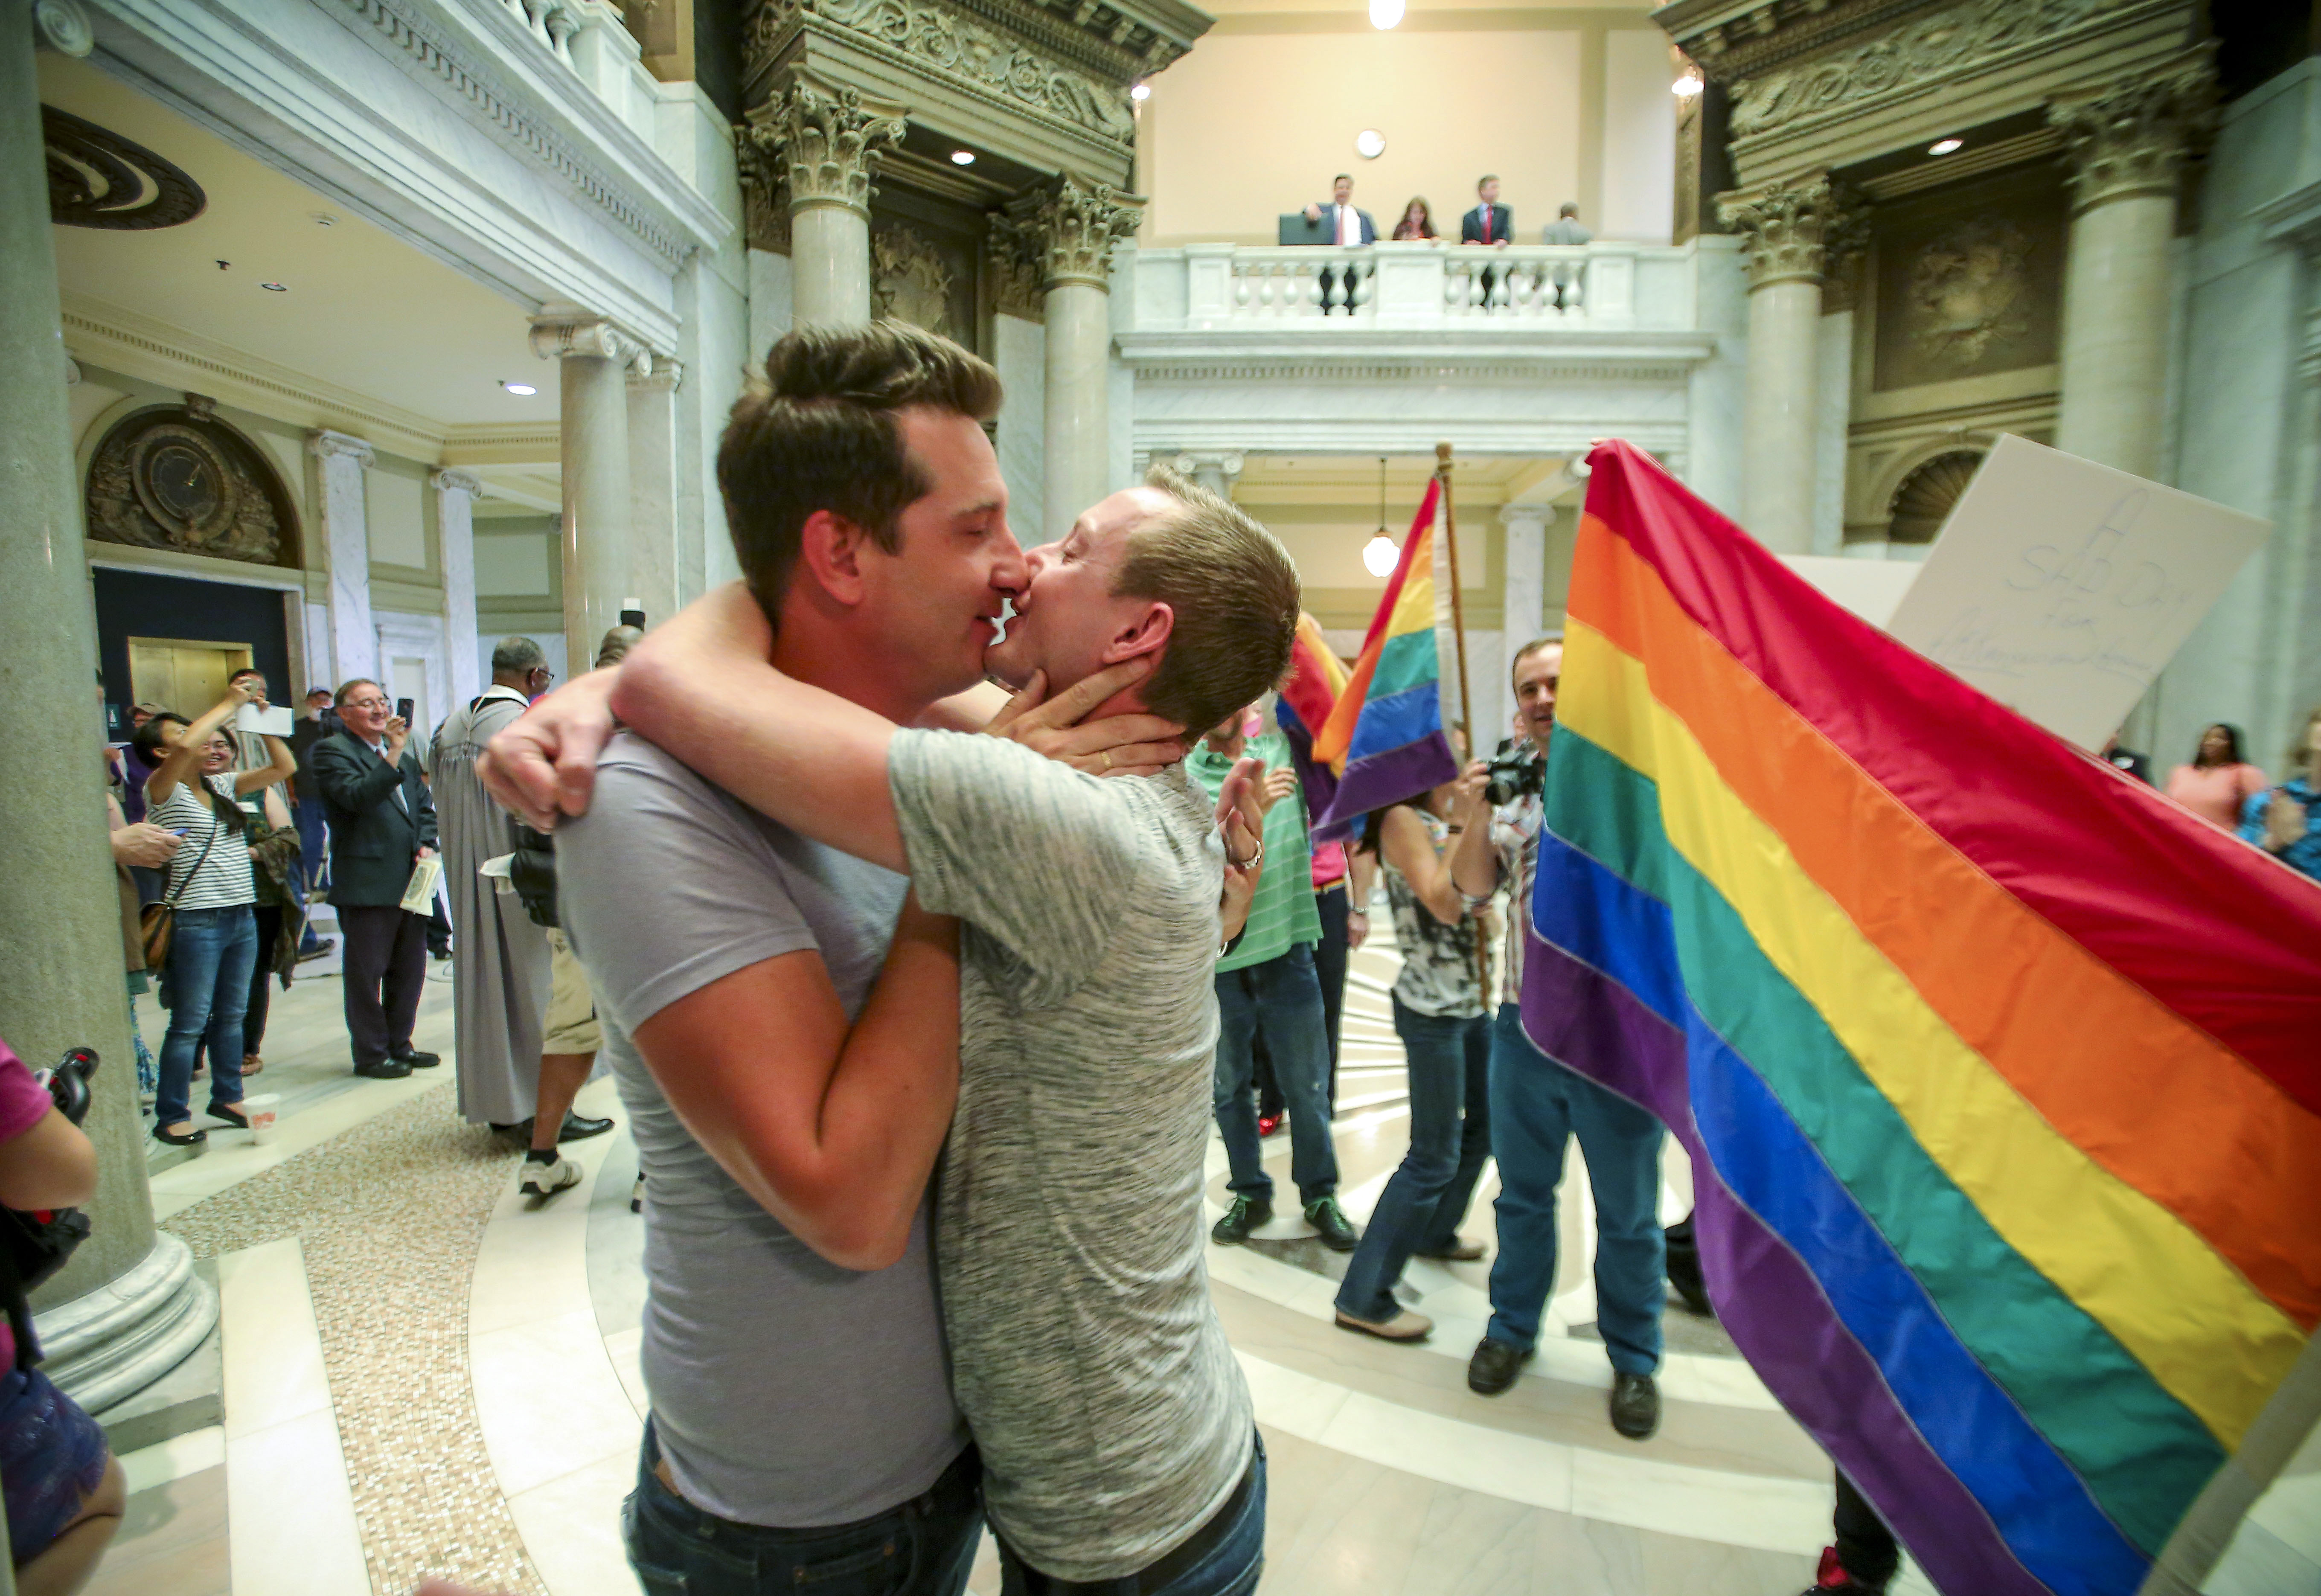 Brandon Armstrong, left, and Thomas Etheridge, right, both of Alexander, Ark. kiss and embrace after they were wed in the rotunda of the Pulaski County Courthouse in Little Rock, Ark. on May 12, 2014.